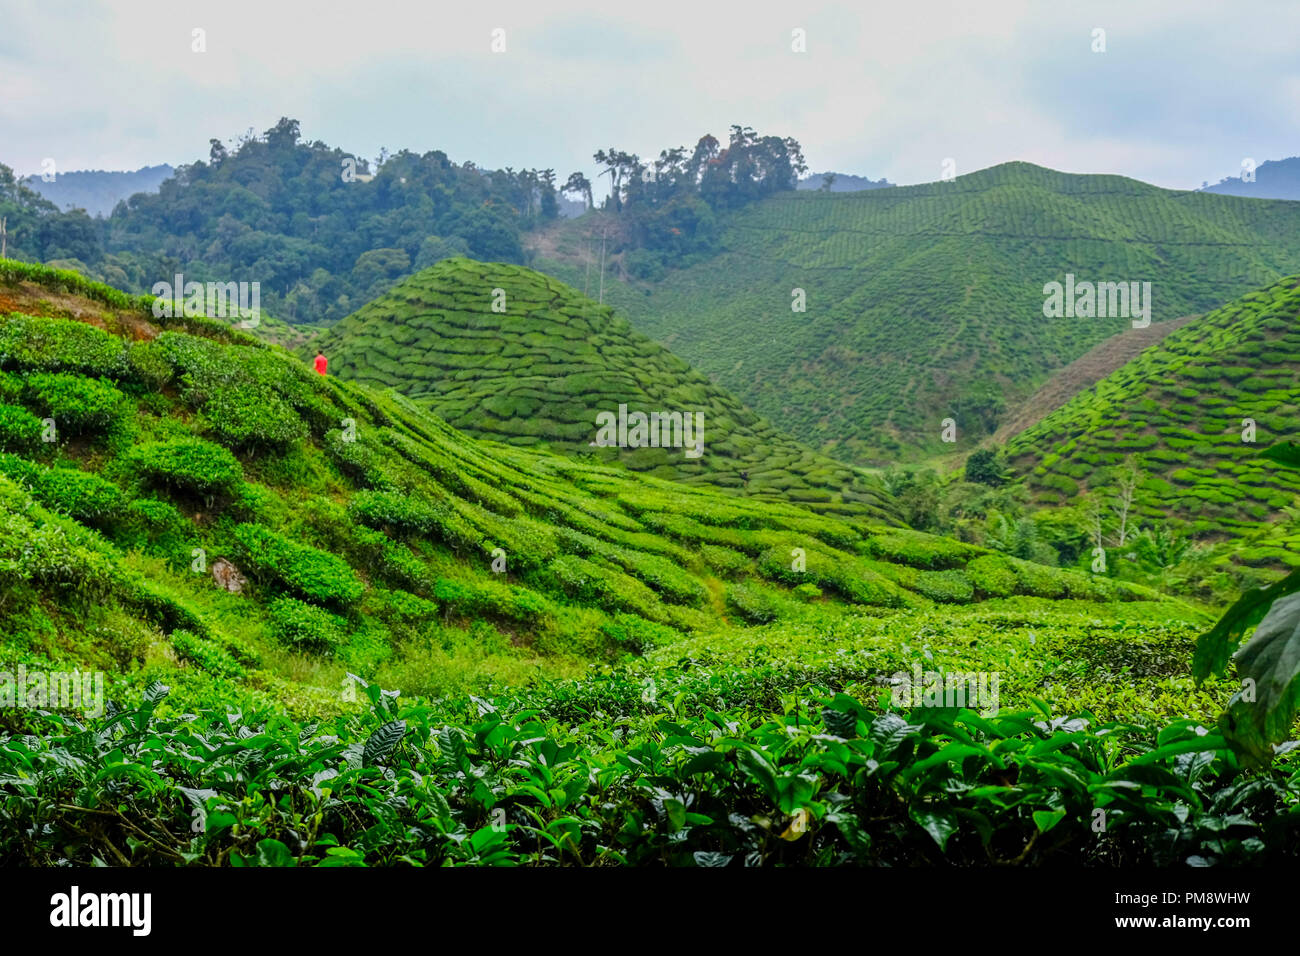 Tea plantation is the major plantation of the Cameron highland since 1929 and it is more than thousands of hectares.   The Cameron Highlands is one of a tourist destination located at Pahang, Malaysia and it is named after a British explorer and geologist, William Cameron. Since the discovery of Cameron Highlands, it has been an agricultural site's until to nowadays and the most well known plantation is tea. It is also rich with flora's and fauna's because the uniqueness climate of the Cameron Highlands. - Stock Image